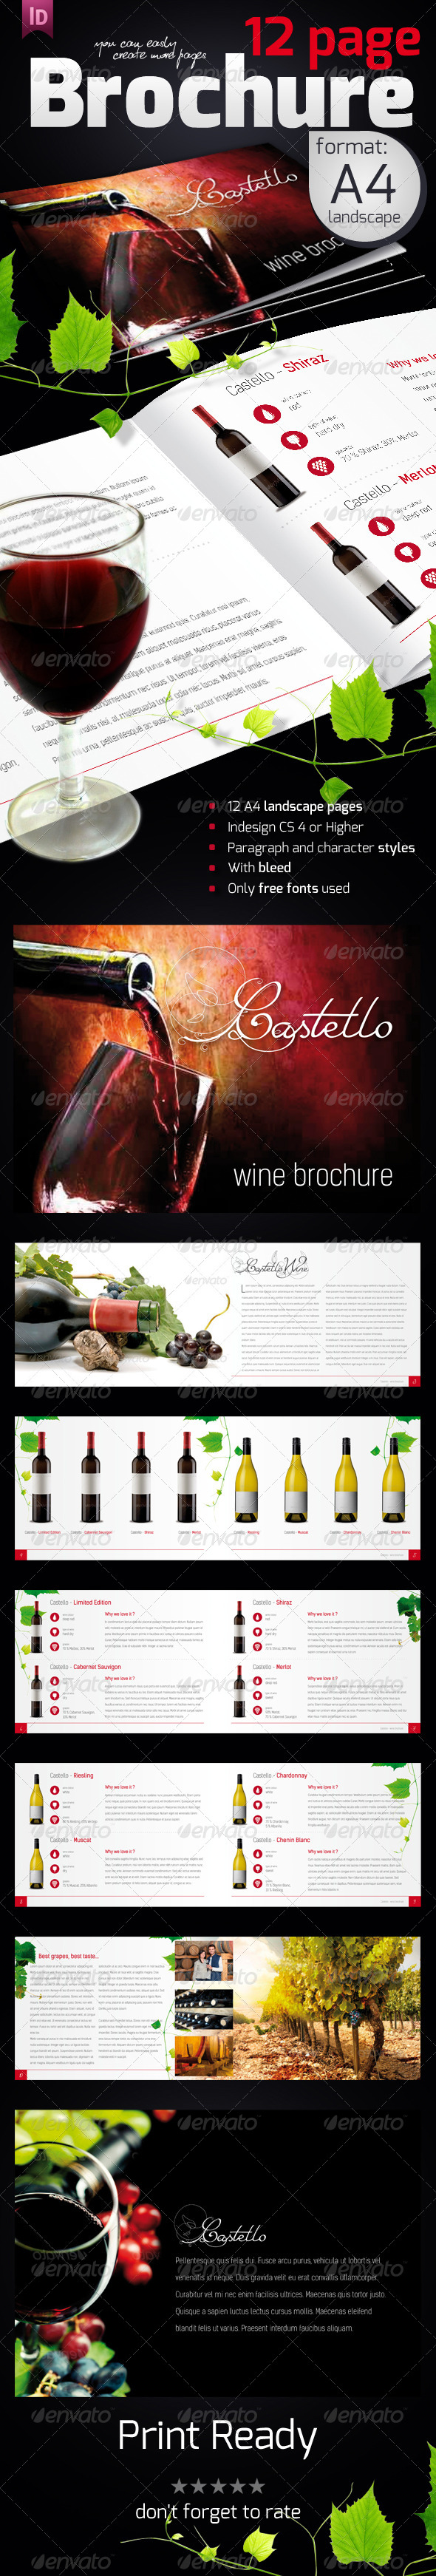 Wine brochure graphicriver for Wine brochure template